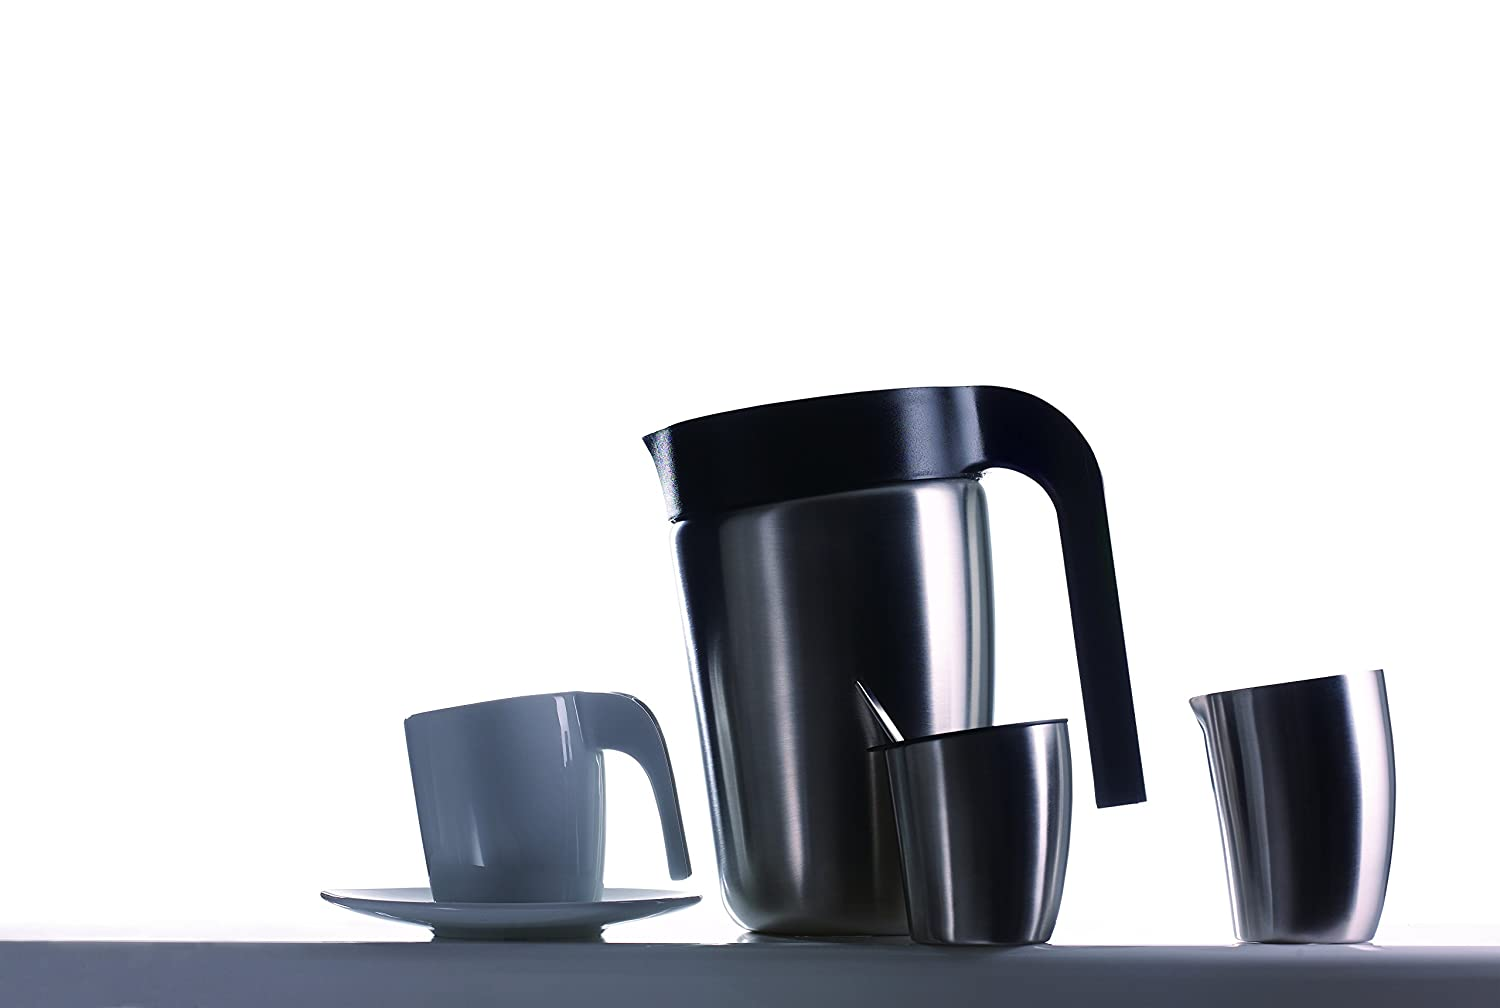 Metier KAFEI Double Wall French Press /(BK/) D0031 【18//10ステンレス製ダブルウォールフレンチプレス】 /(black color/)